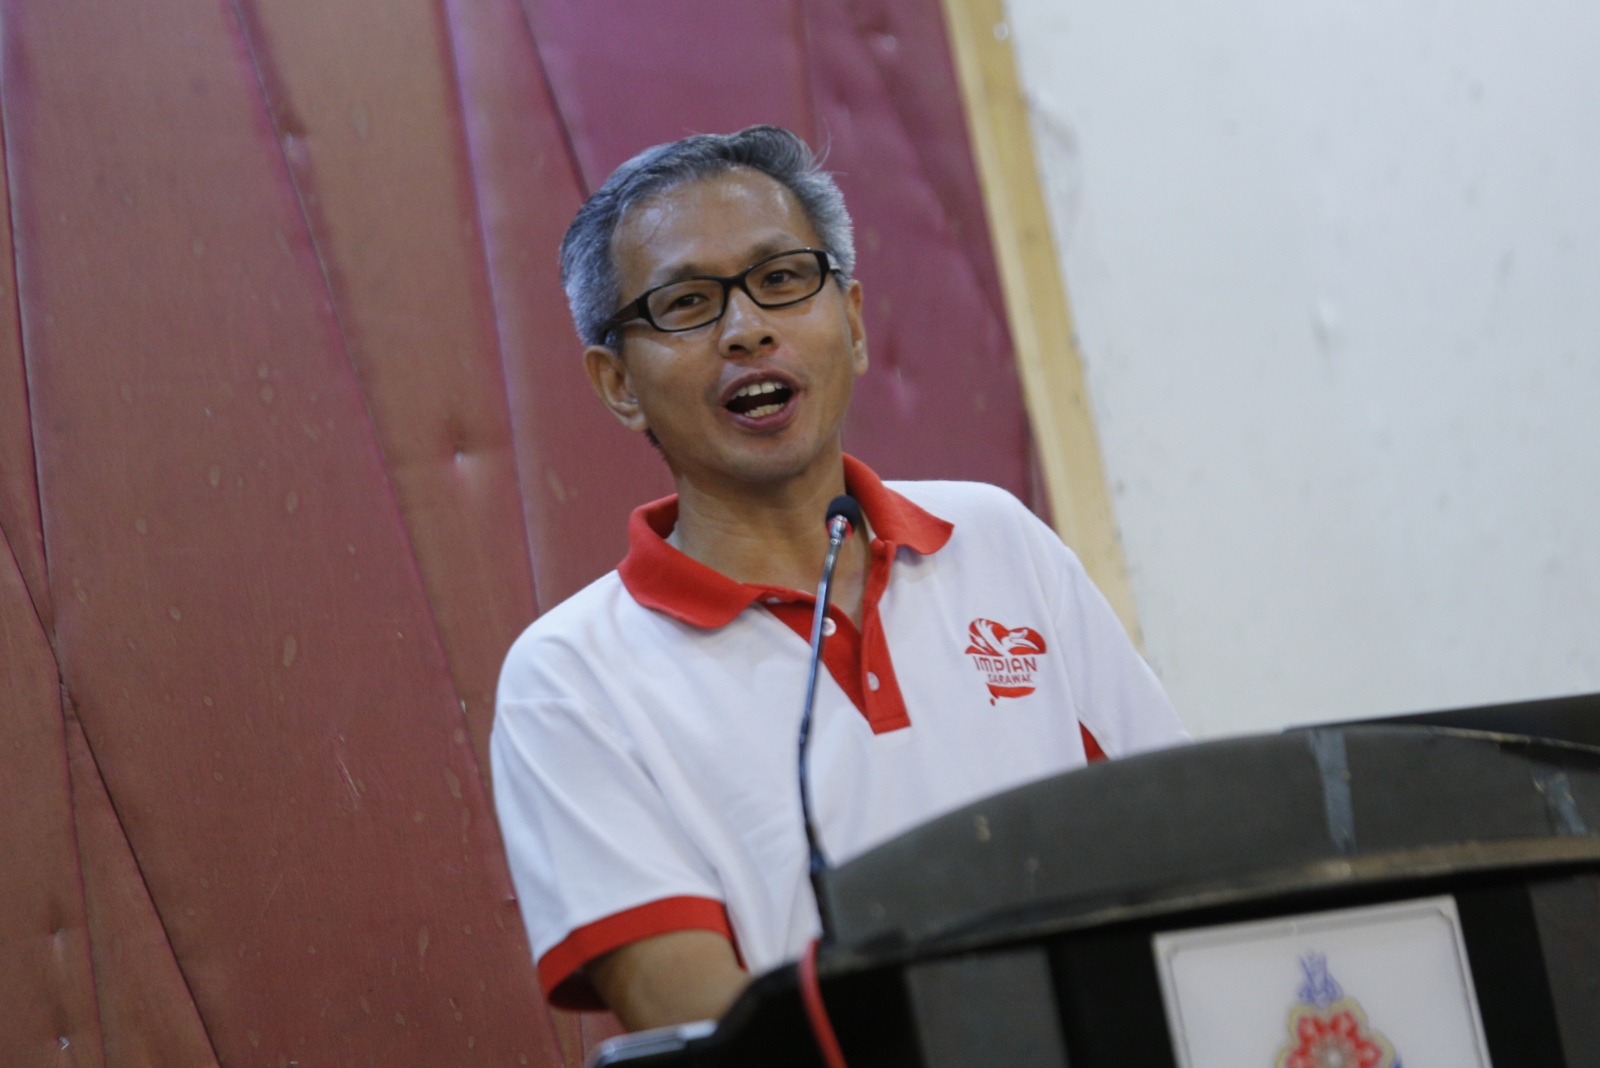 Tony Pua has asked Datuk Seri Azalina Othman Said to explain her statement on MACC not finding corruption activities involving the prime minister. – The Malaysian Insider file pic, March 14, 2016.